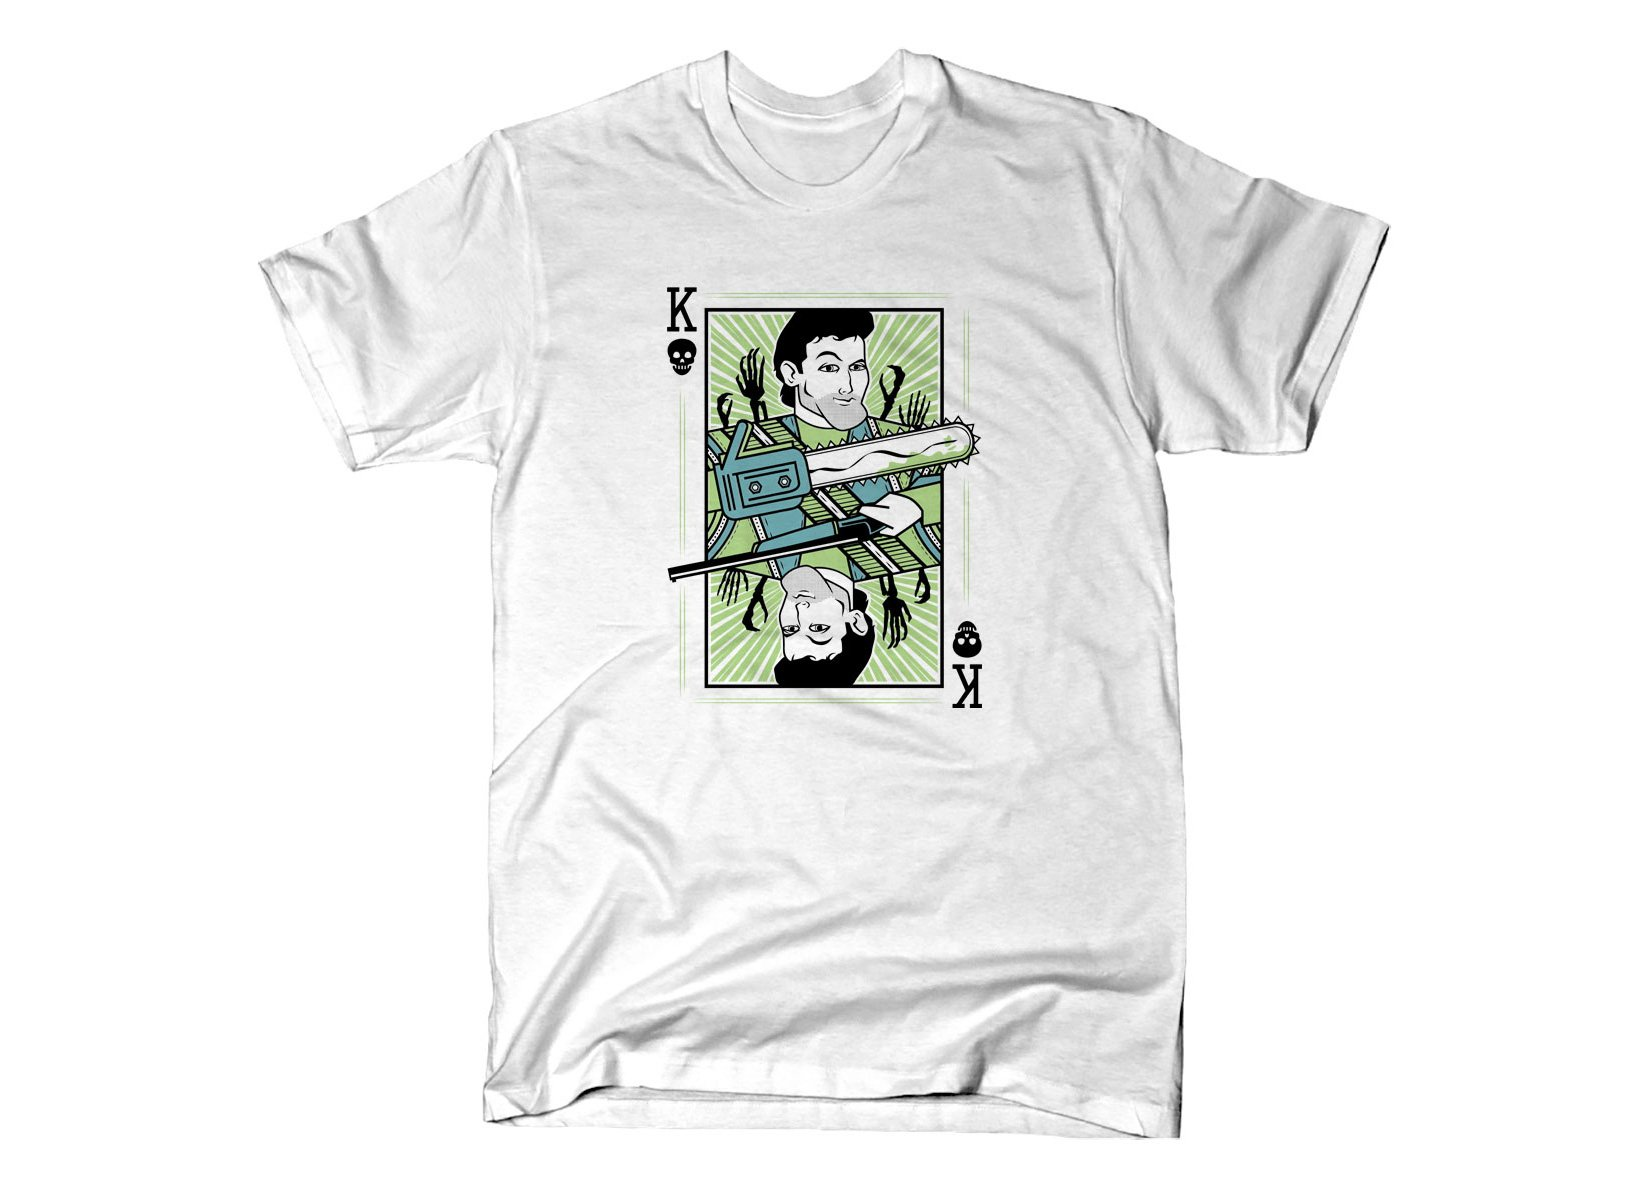 King Ash on Mens T-Shirt